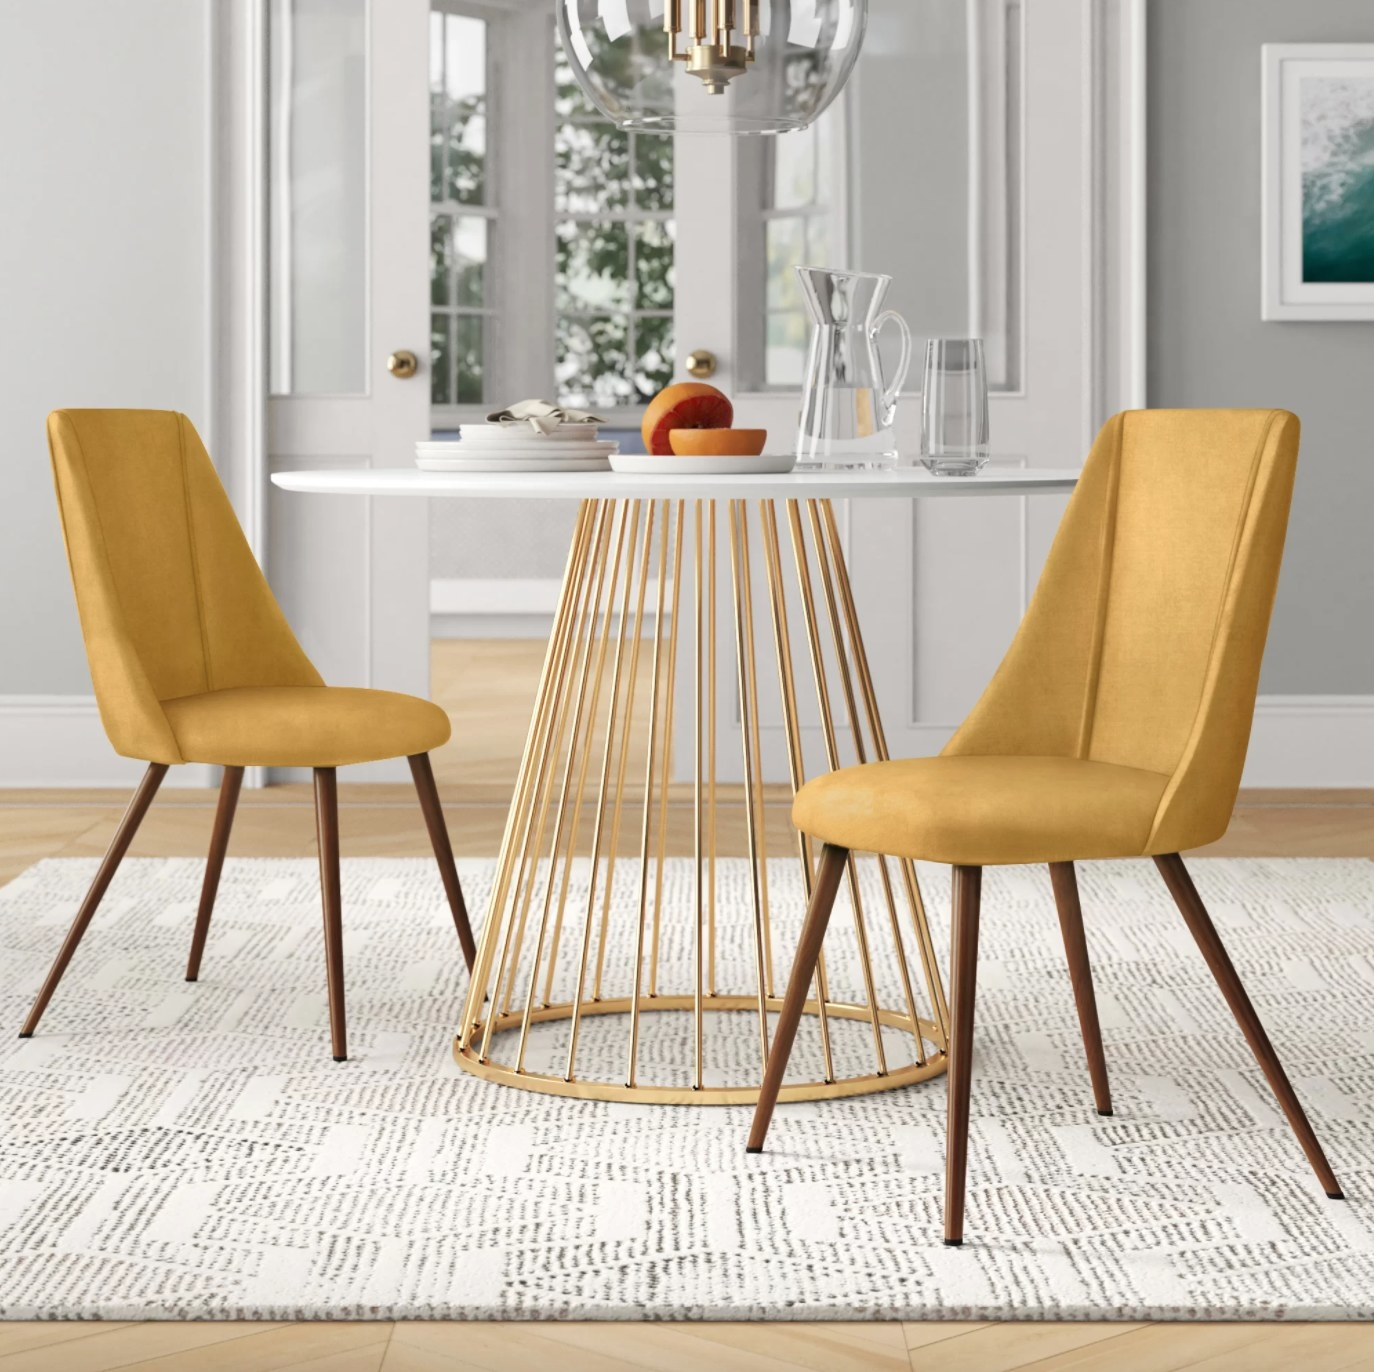 The set of two upholstered side chairs in yellow next to a round table with metal legs